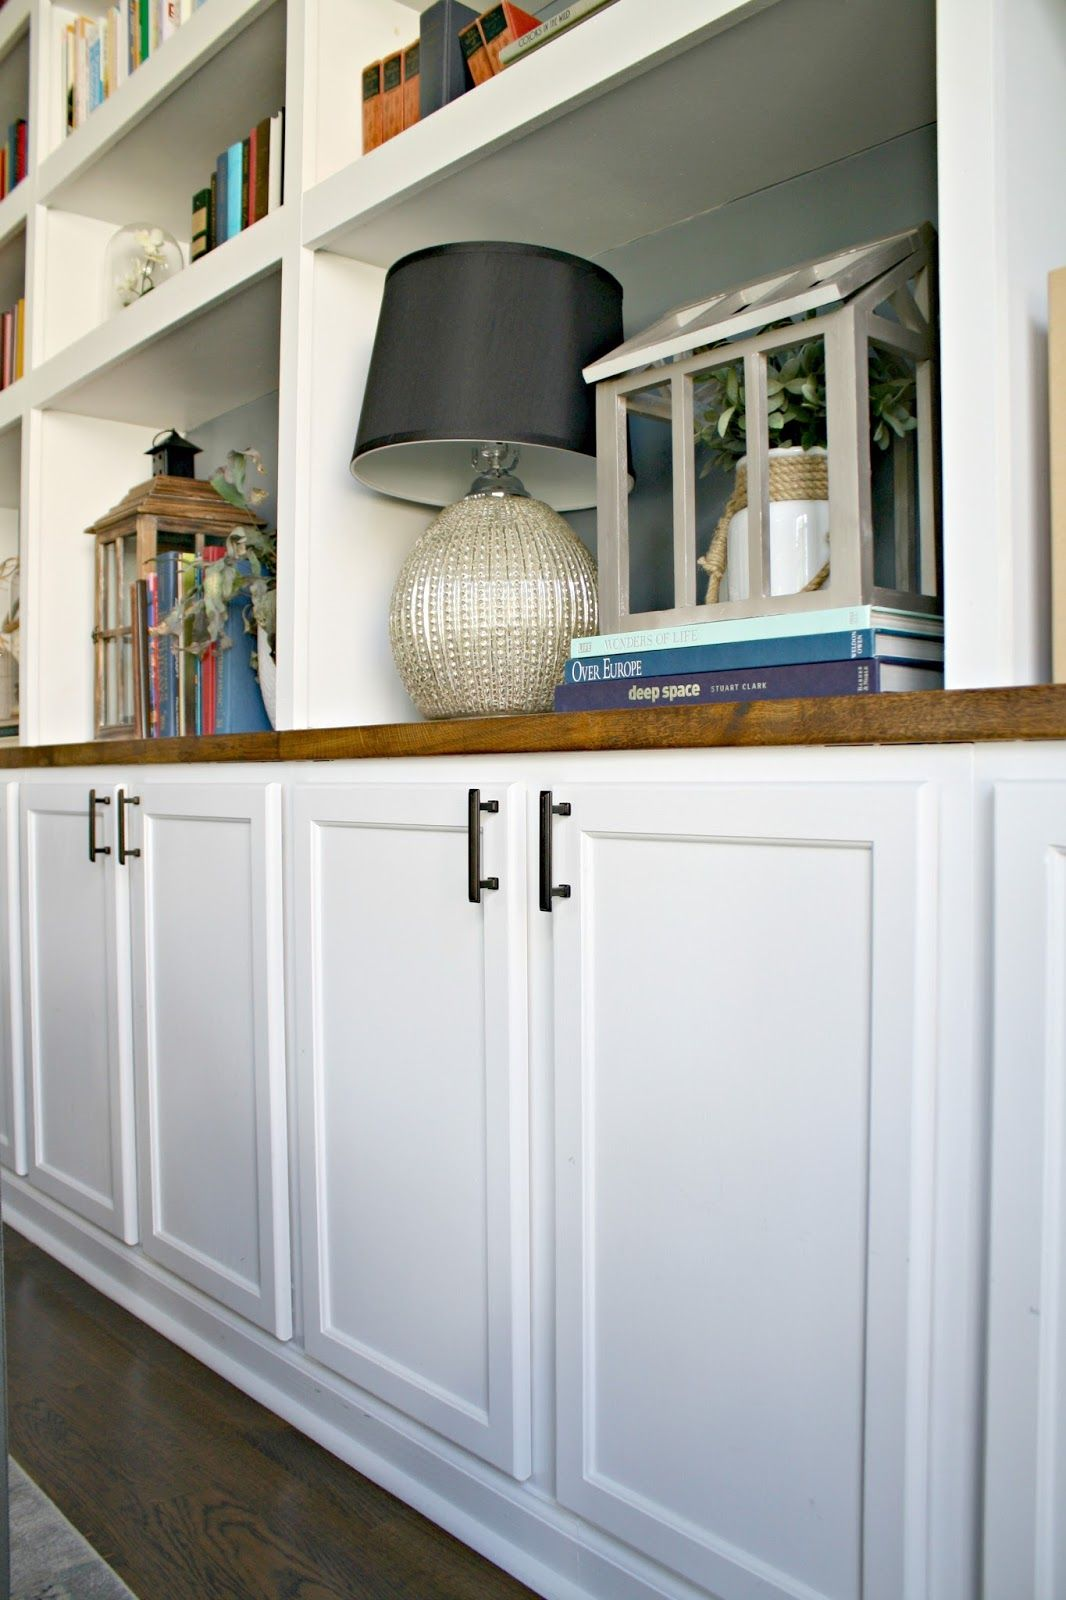 Home Built Kitchen Cabinets How To Create Custom Built Ins With Kitchen Cabinets Bookcases